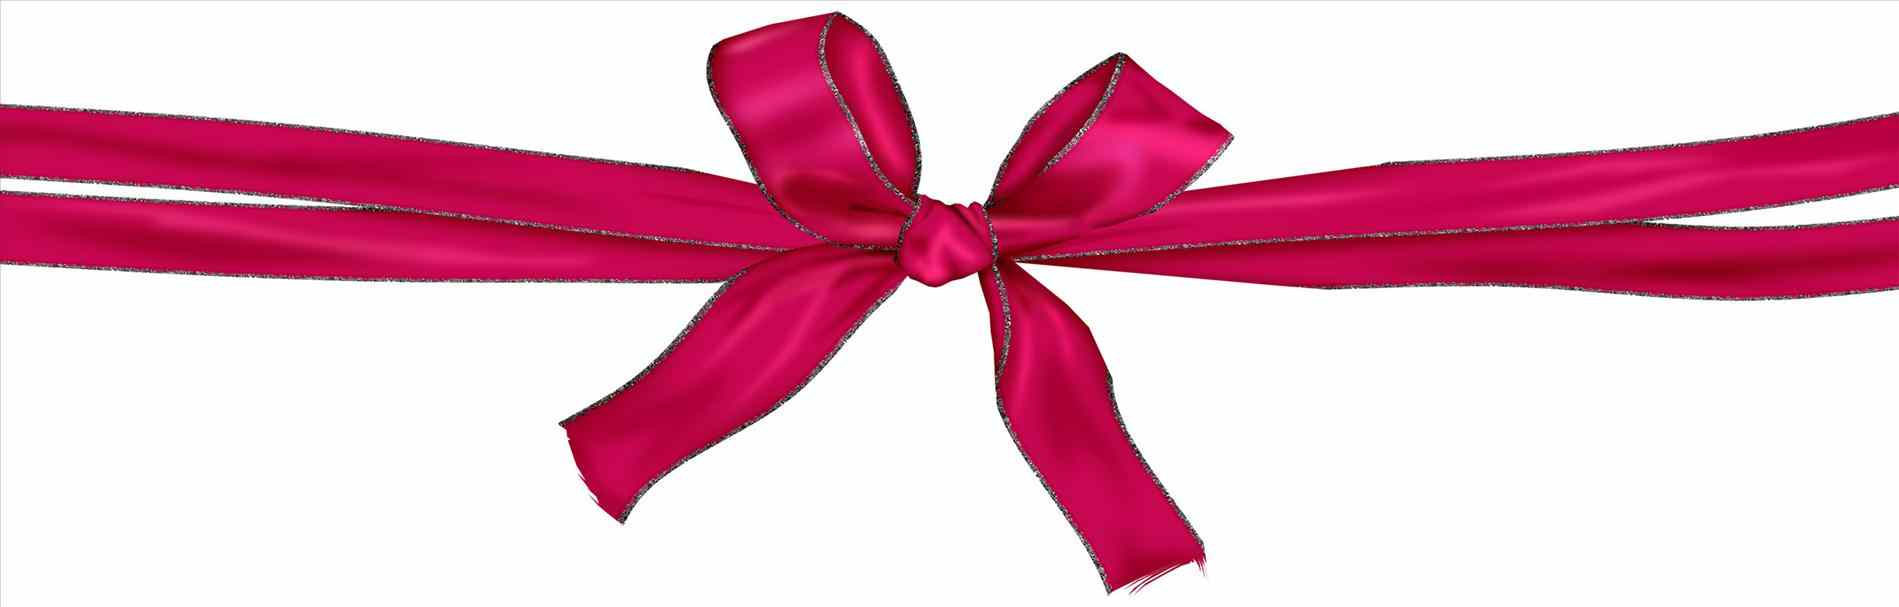 1899x607 Free Download Clip Art On Hot Hot Pink Ribbon Bow Png Clipart Dark